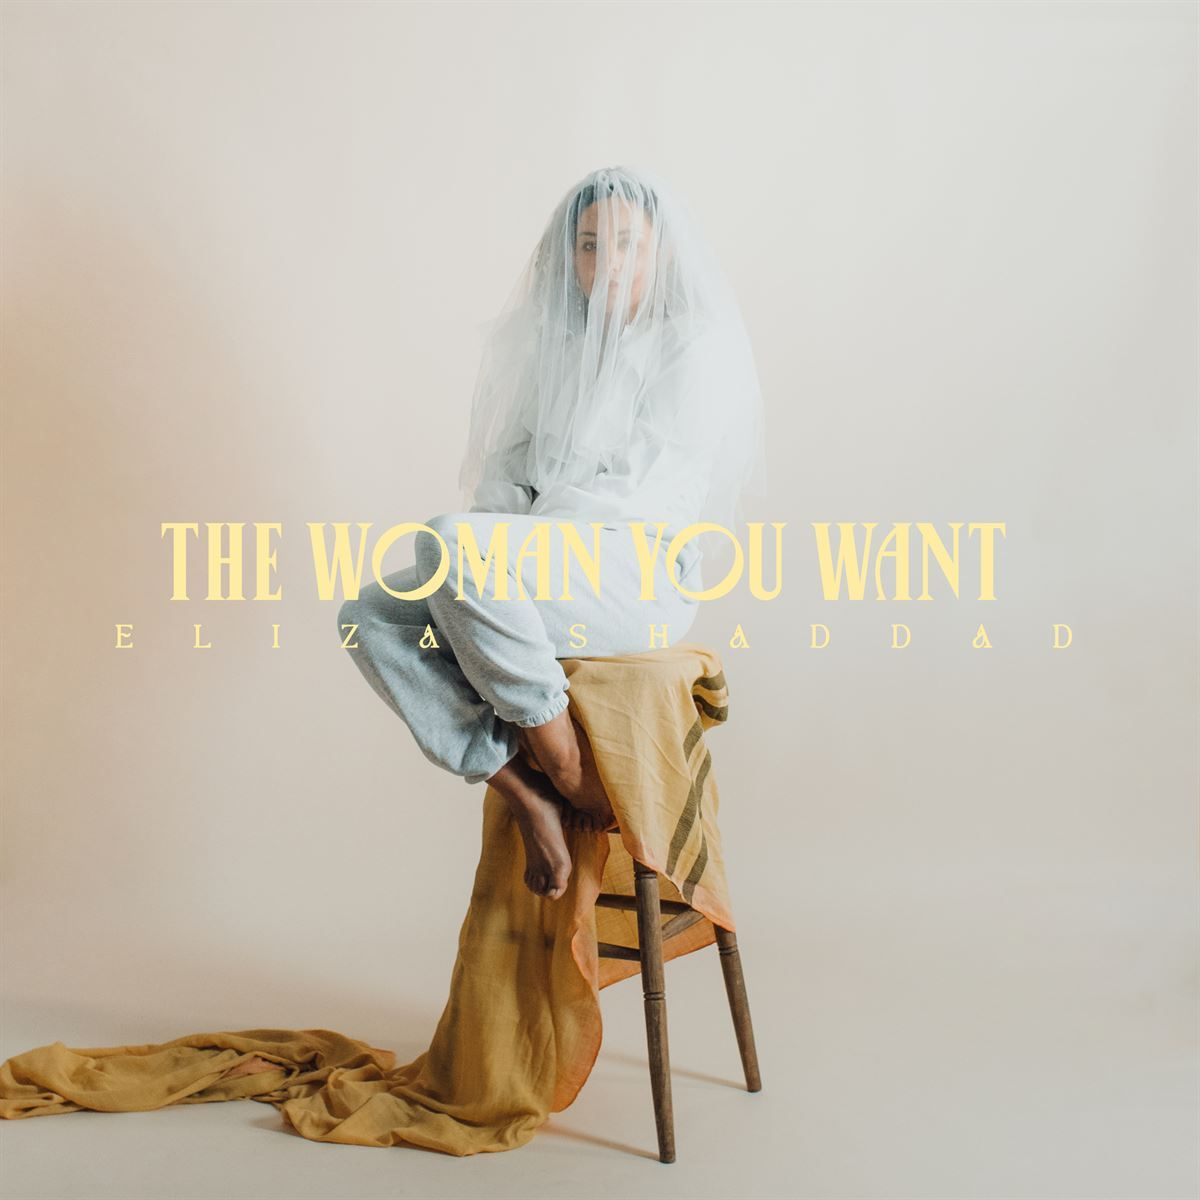 The Woman You Want